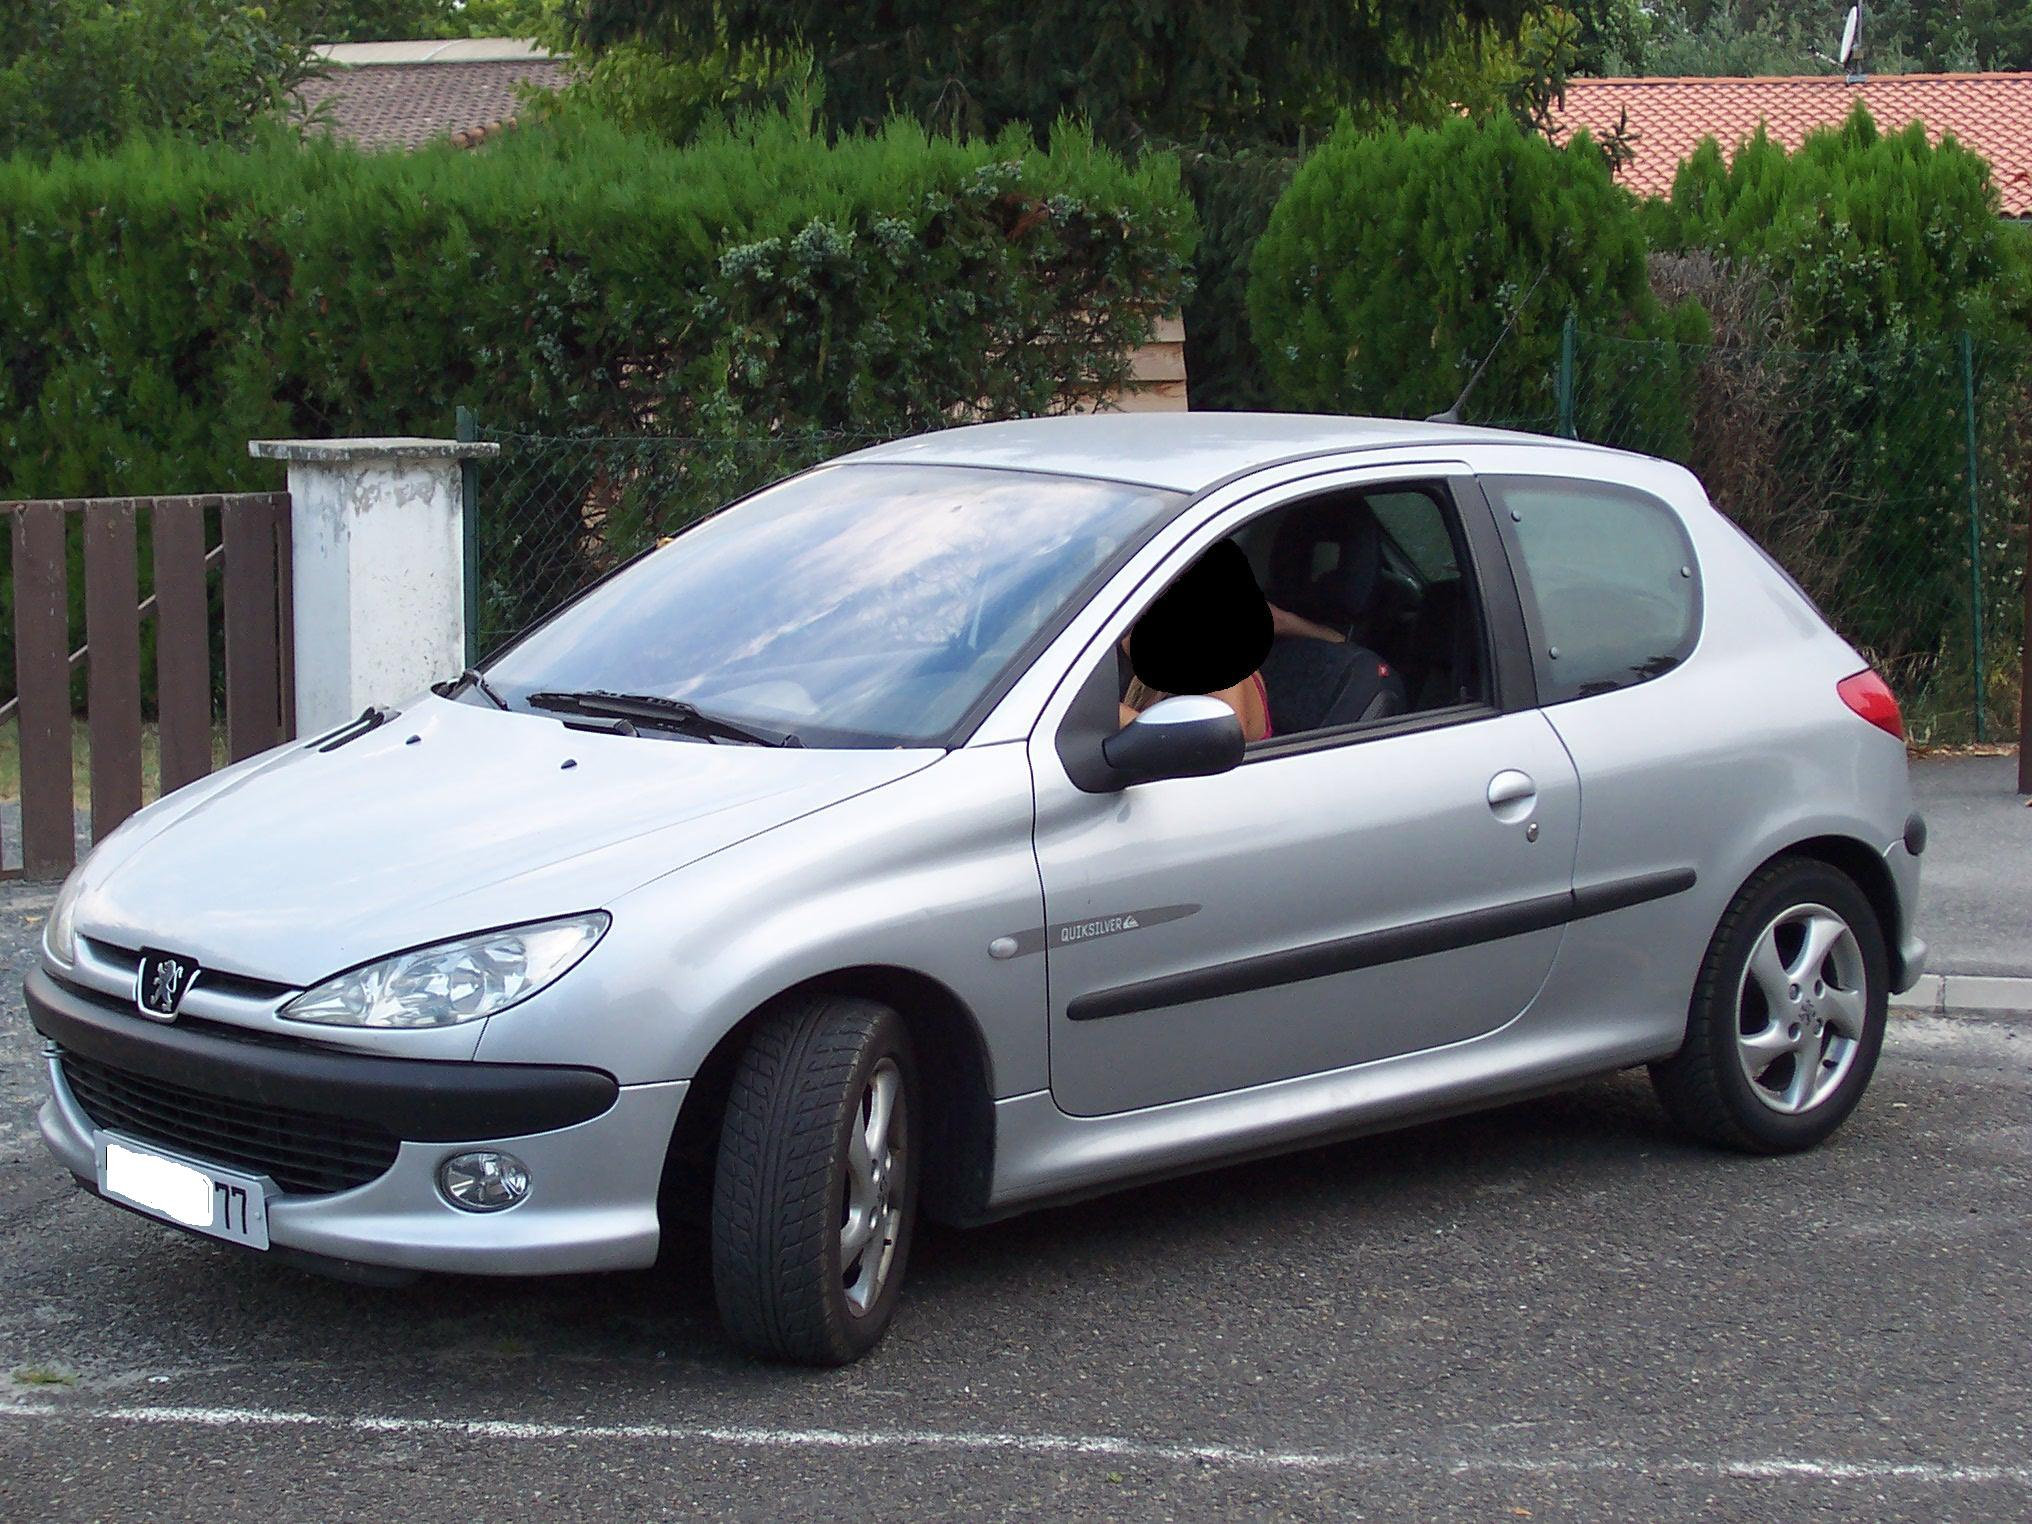 Route occasion peugeot 206 4 portes for Garage peugeot chartres